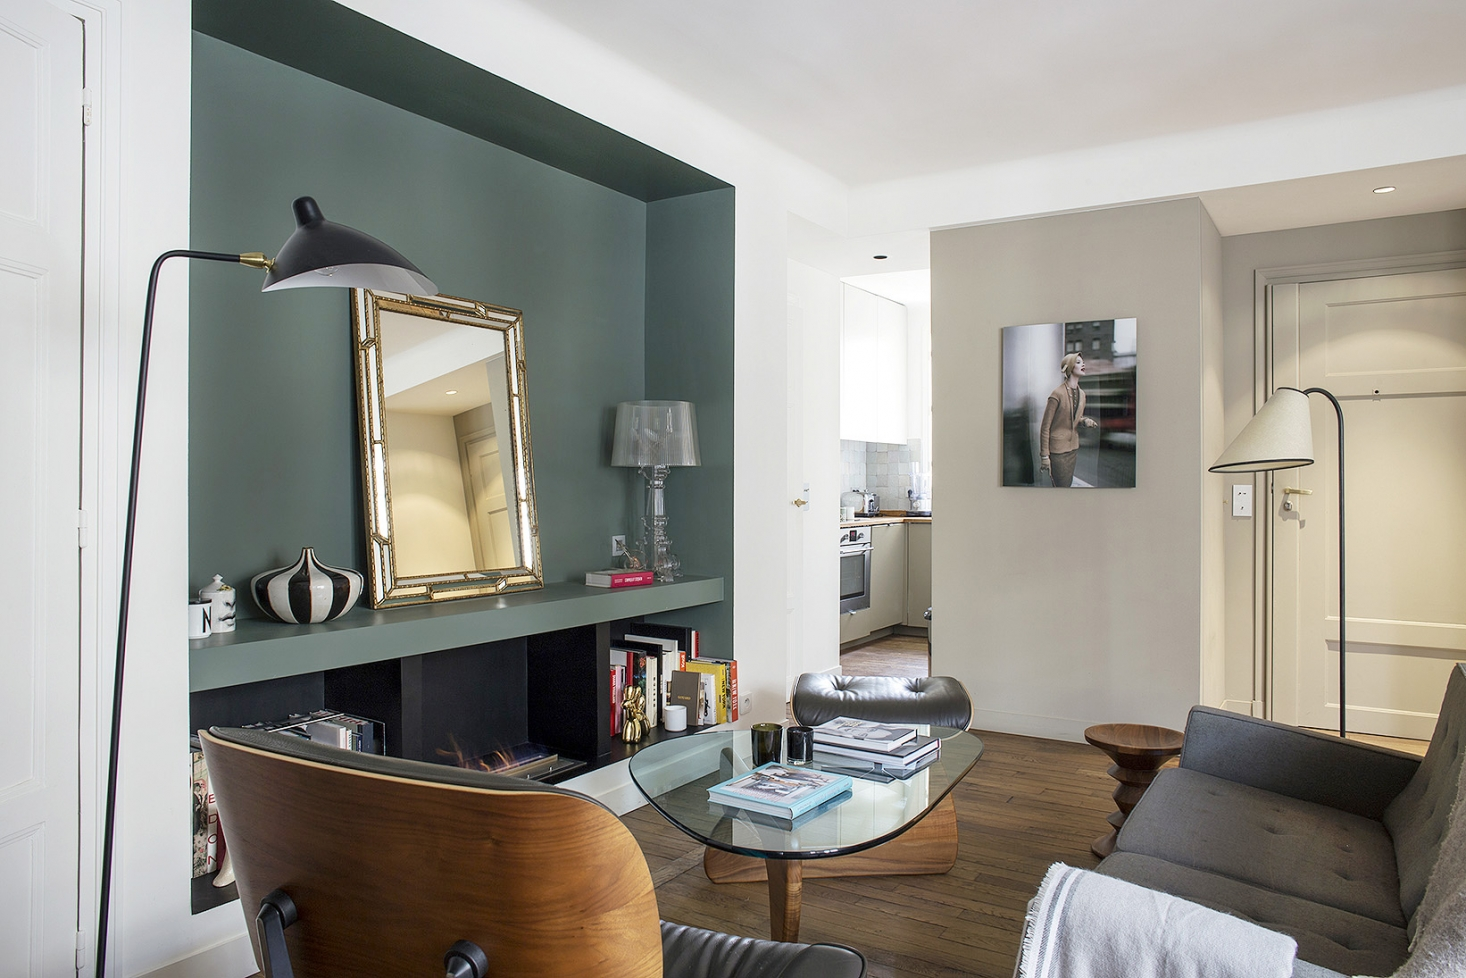 Small-Space Ideas to Steal from a Tiny Paris Apartment, All Cities